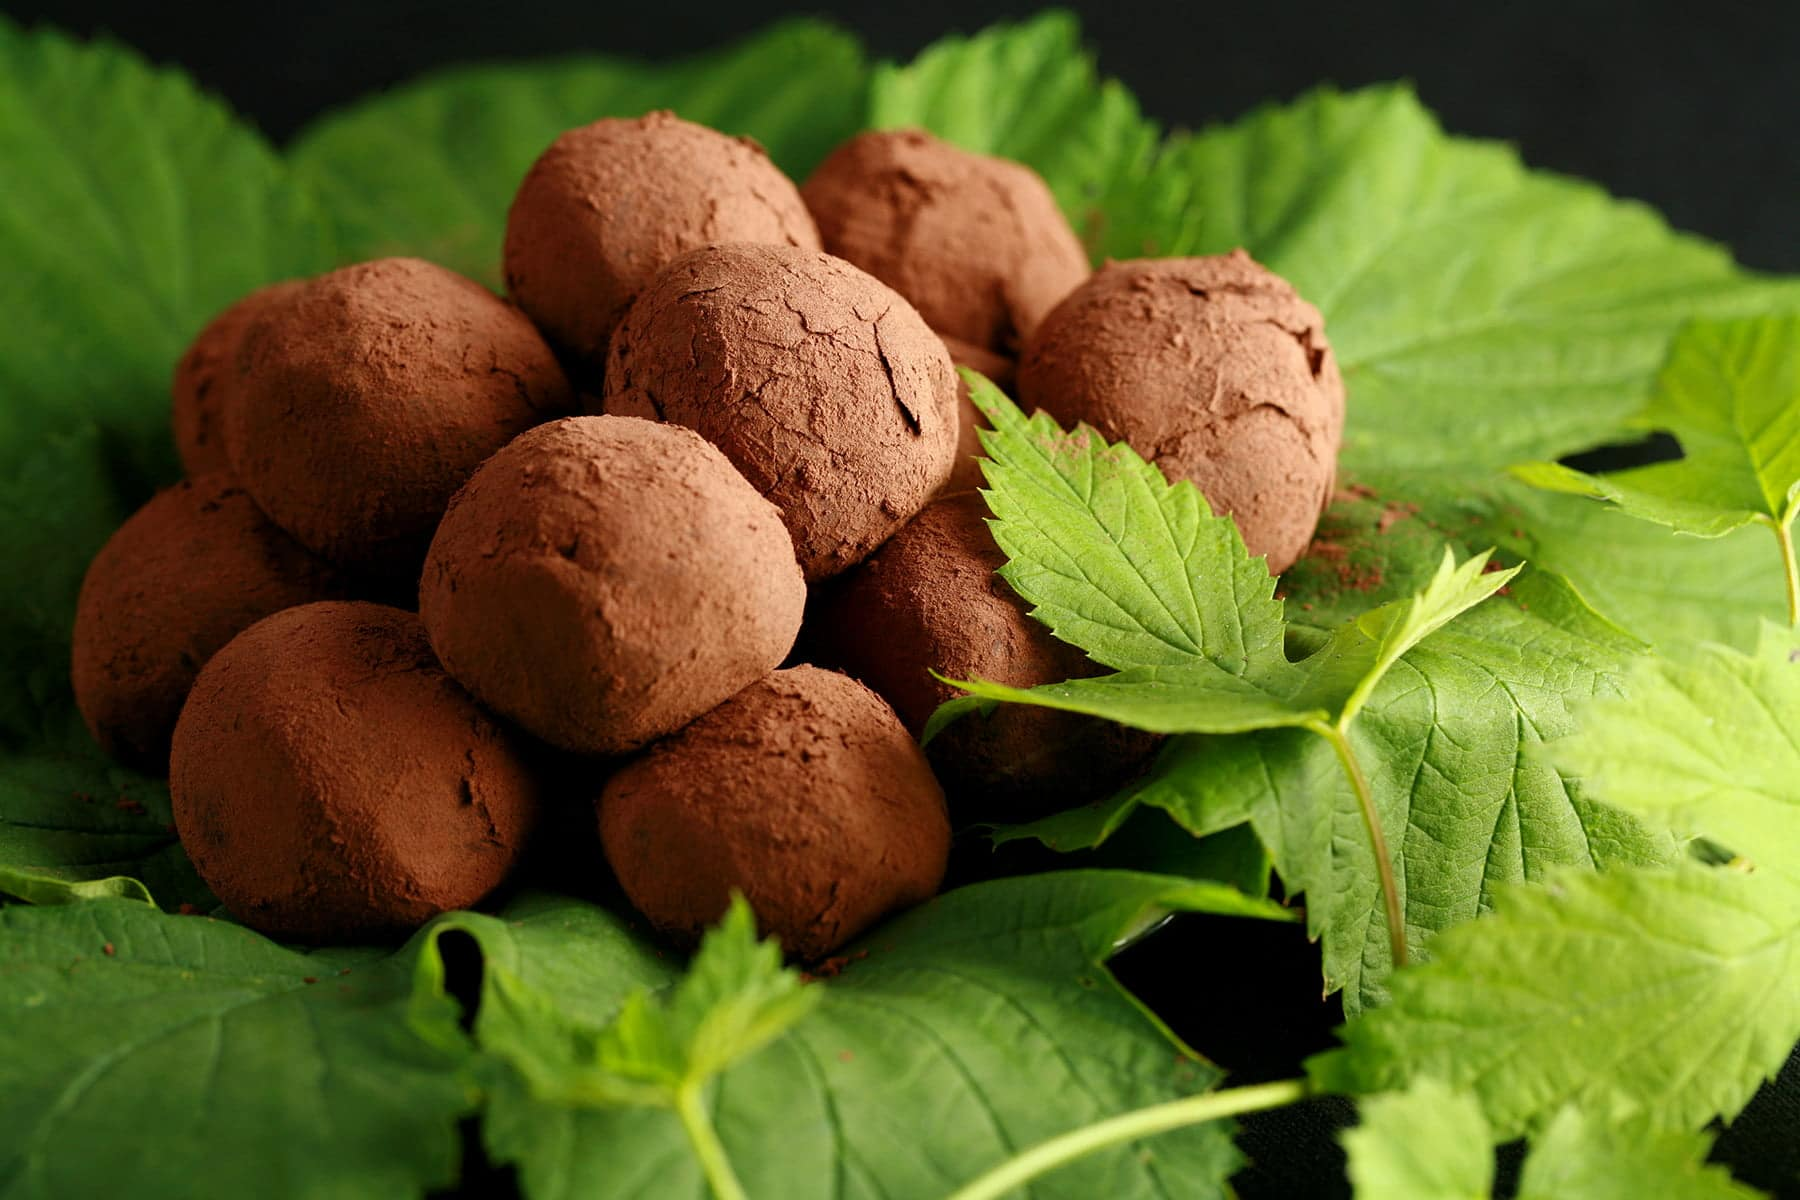 A mound of hop flavored dark chocolate truffles rests on a pile of hop leaves and hop bines.